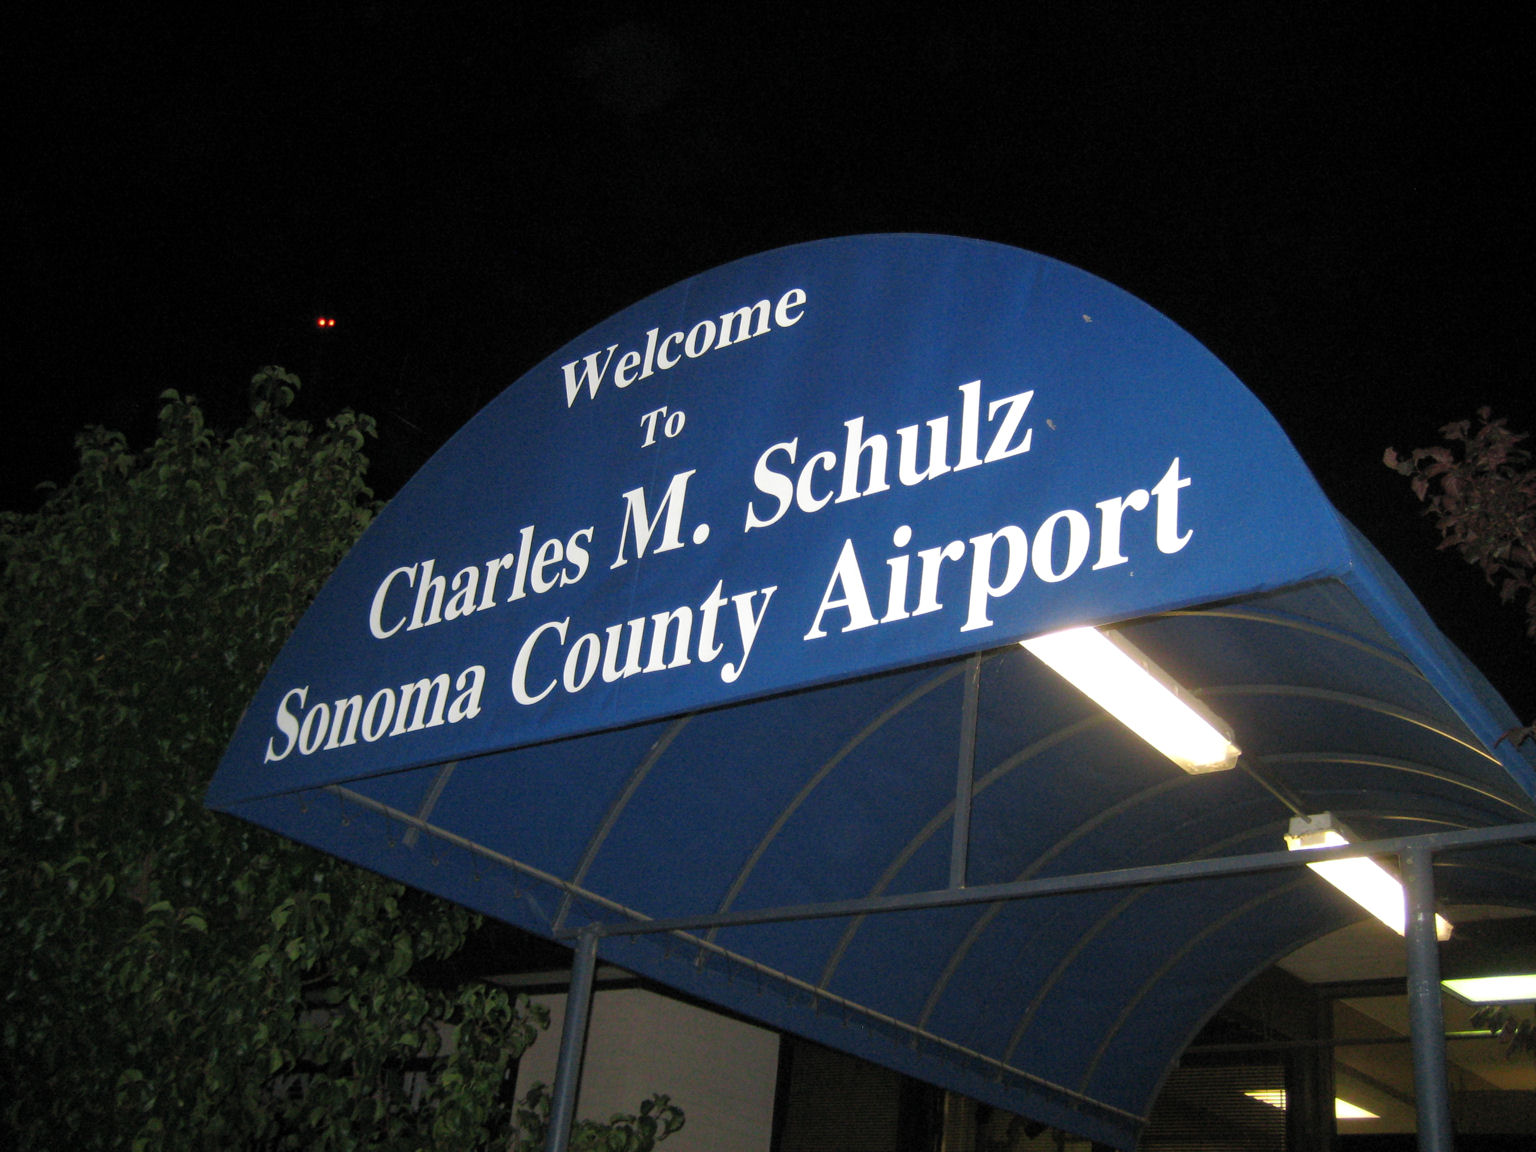 Charles M Schulz Airport